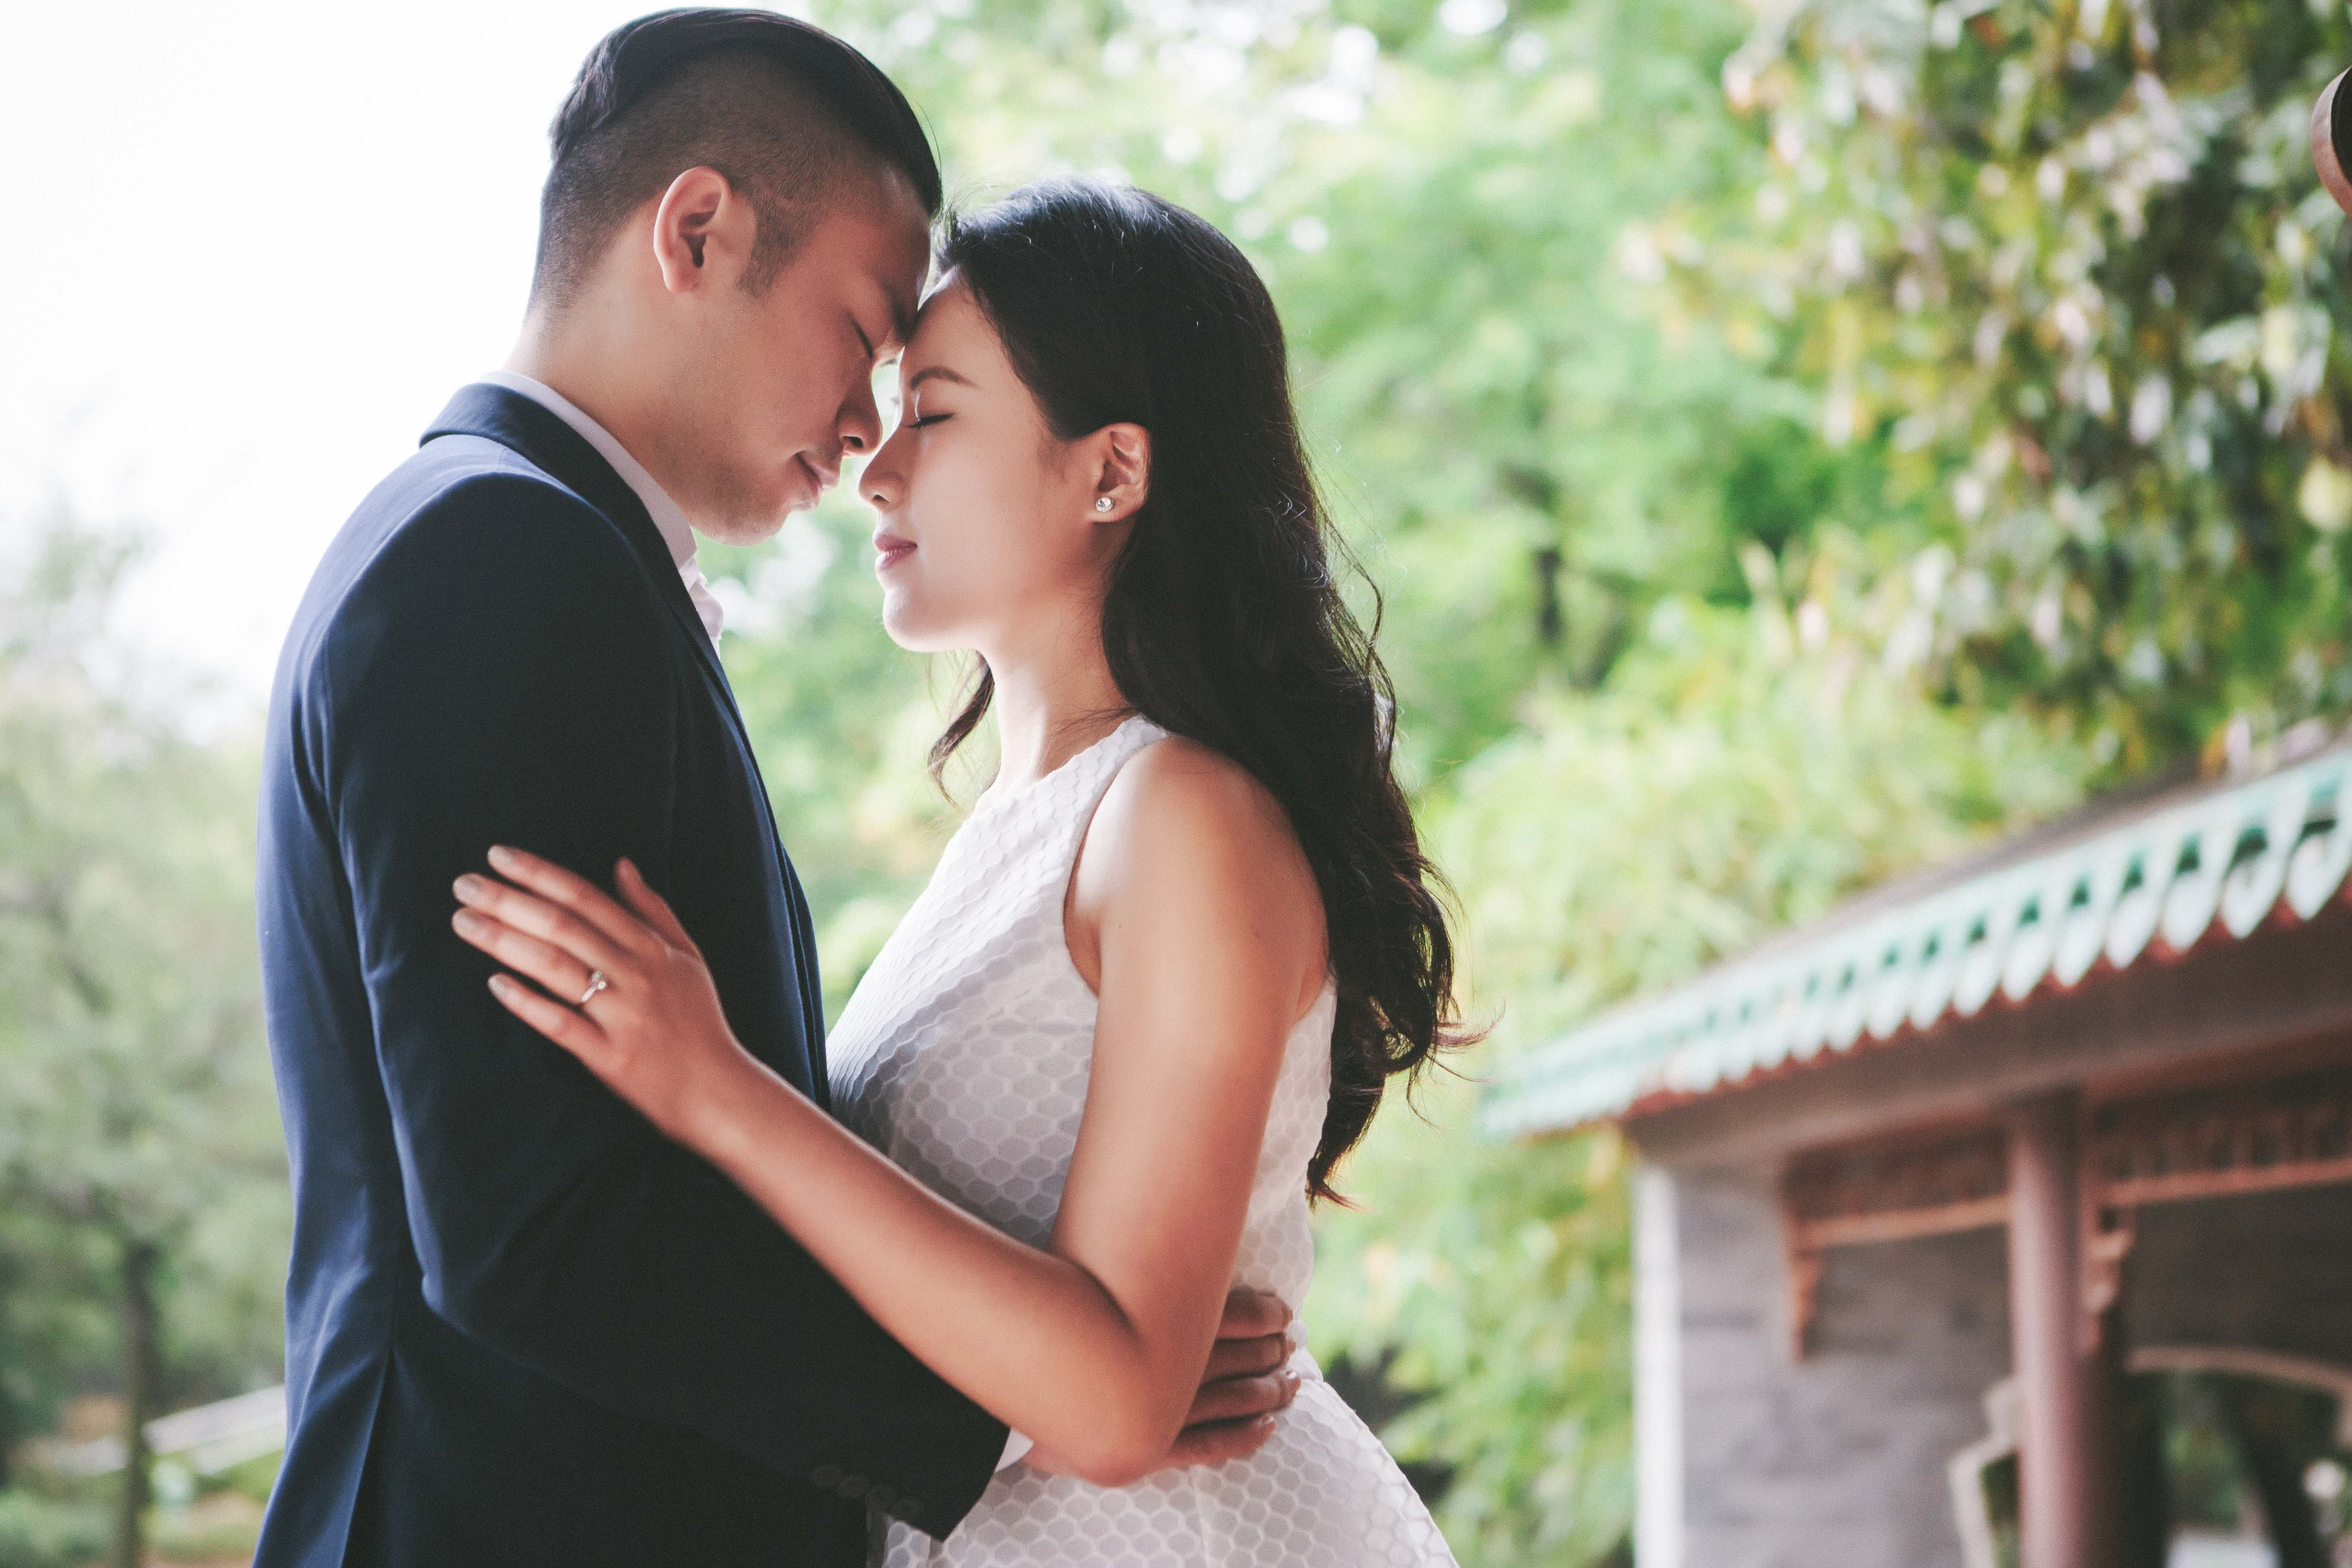 15 Best Pre Wedding Photoshoot Ideas And Tips Photojaanic